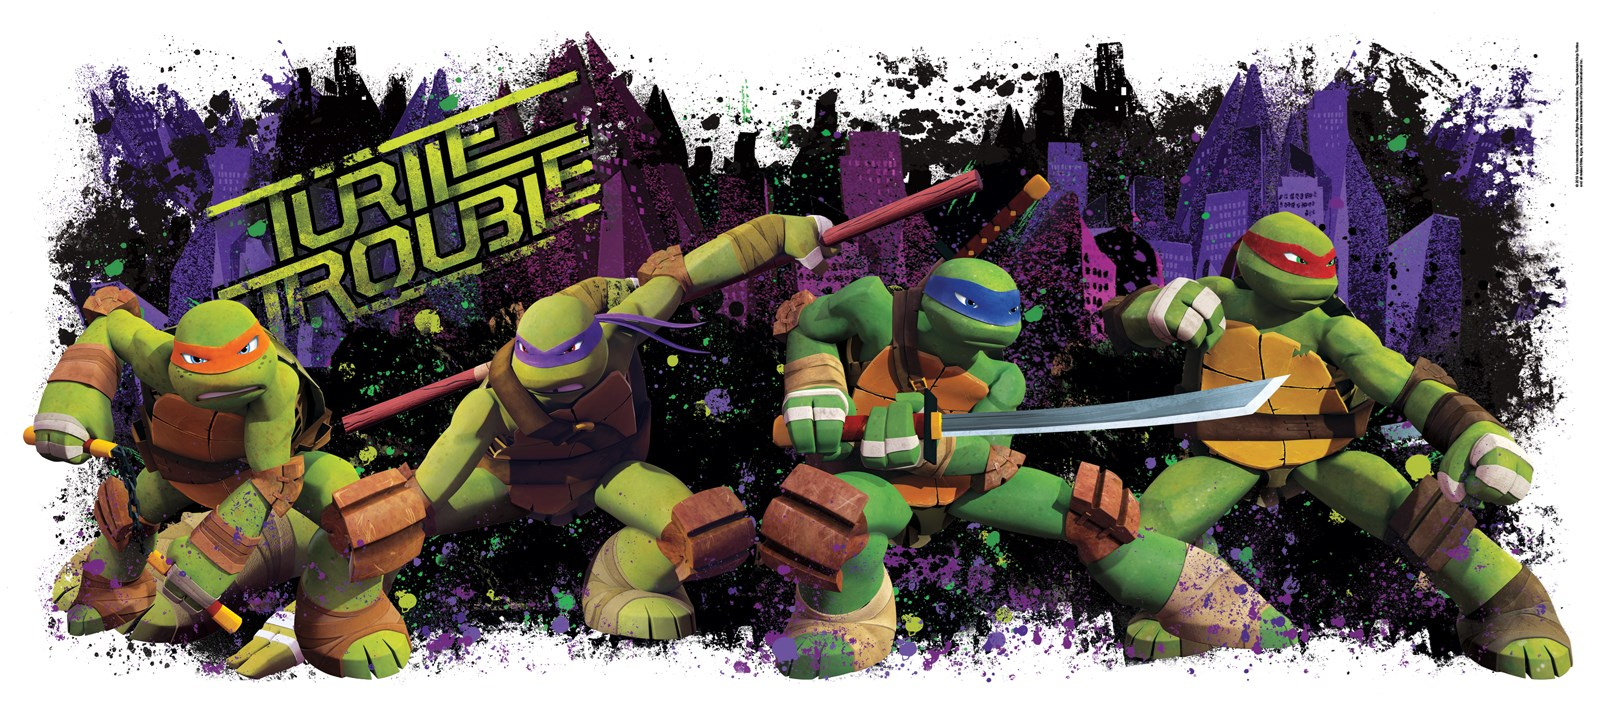 teenage mutant ninja turtles giant wall decal birthdayexpress com default image teenage mutant ninja turtles giant wall decal